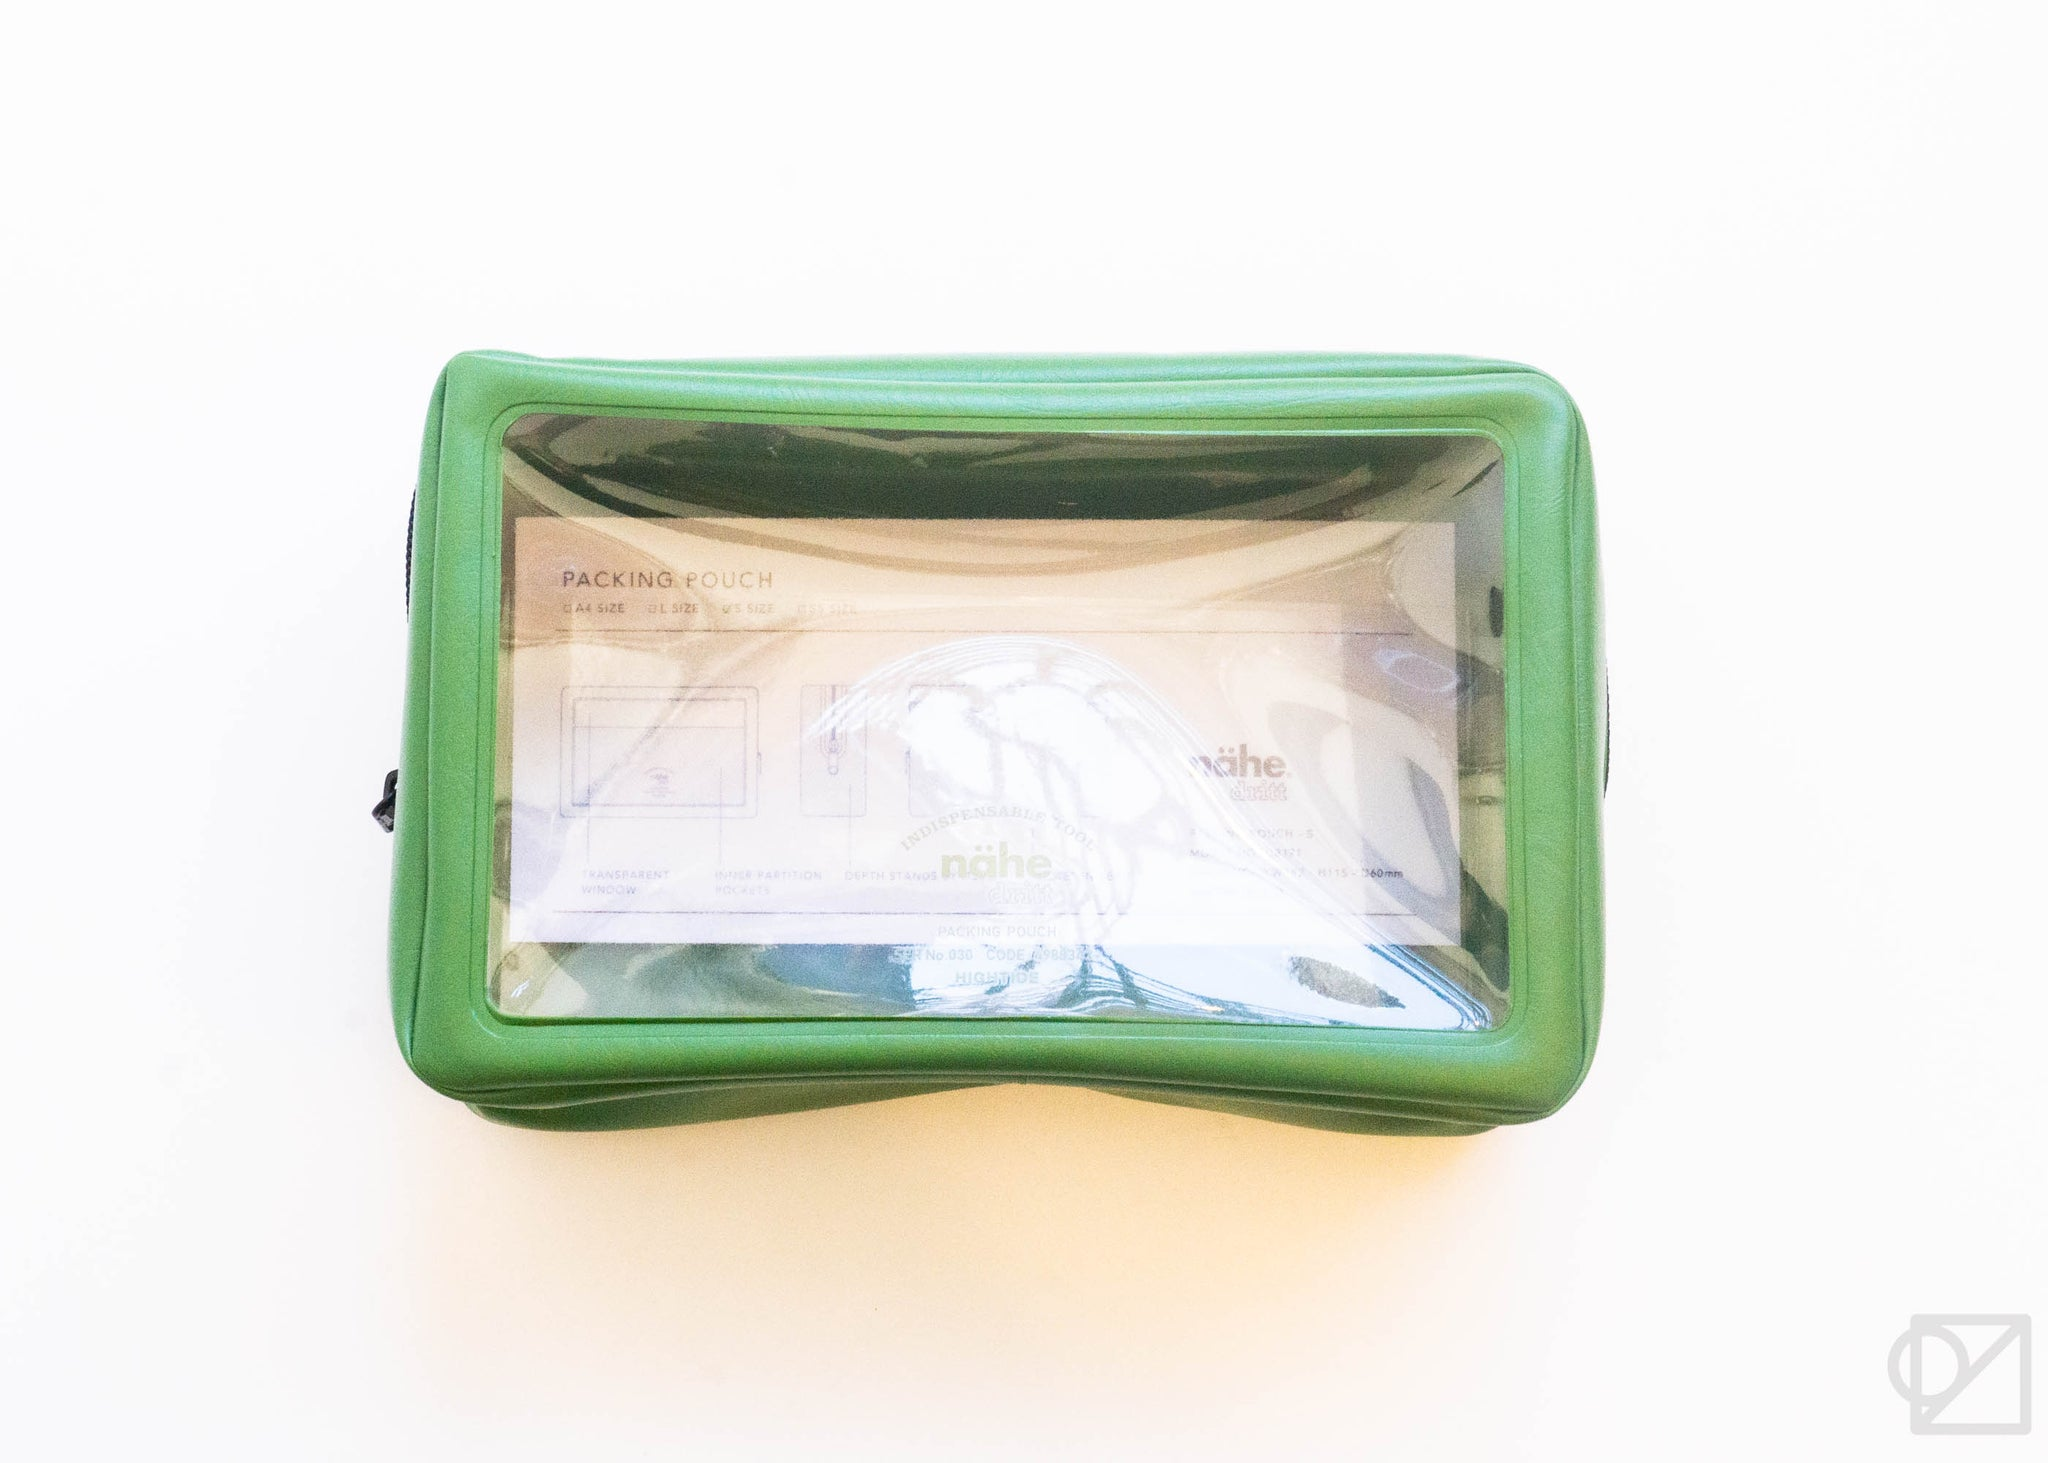 nähe Packing Pouch Green